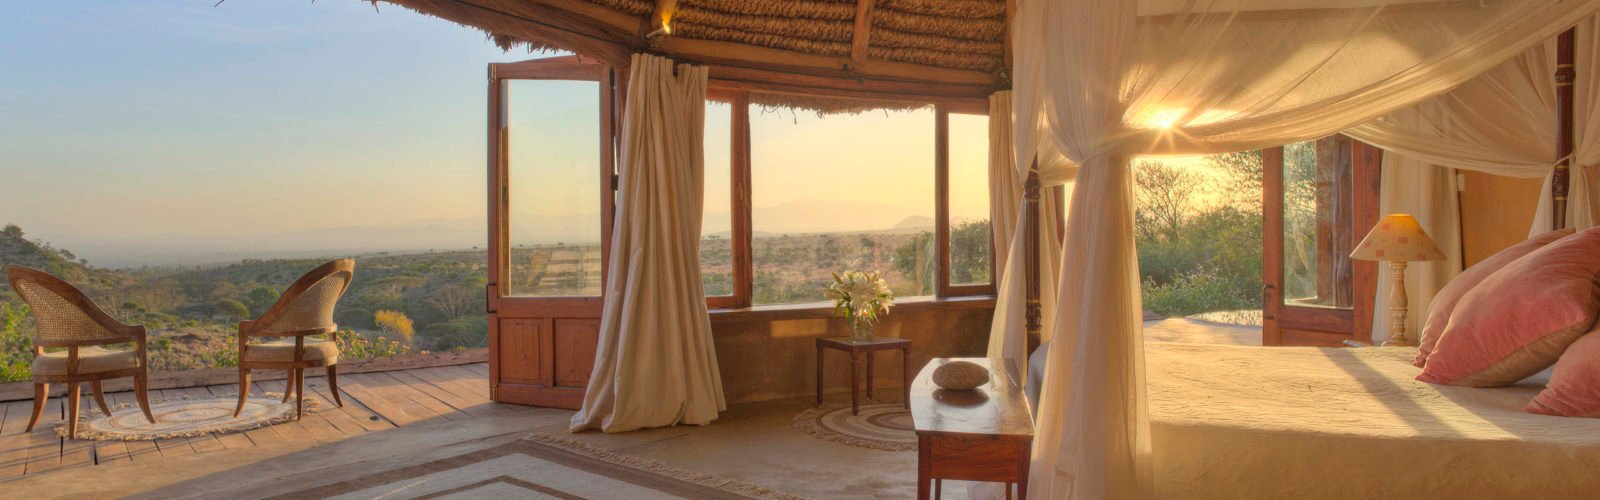 lewa-wilderness-bedroom-with-decking